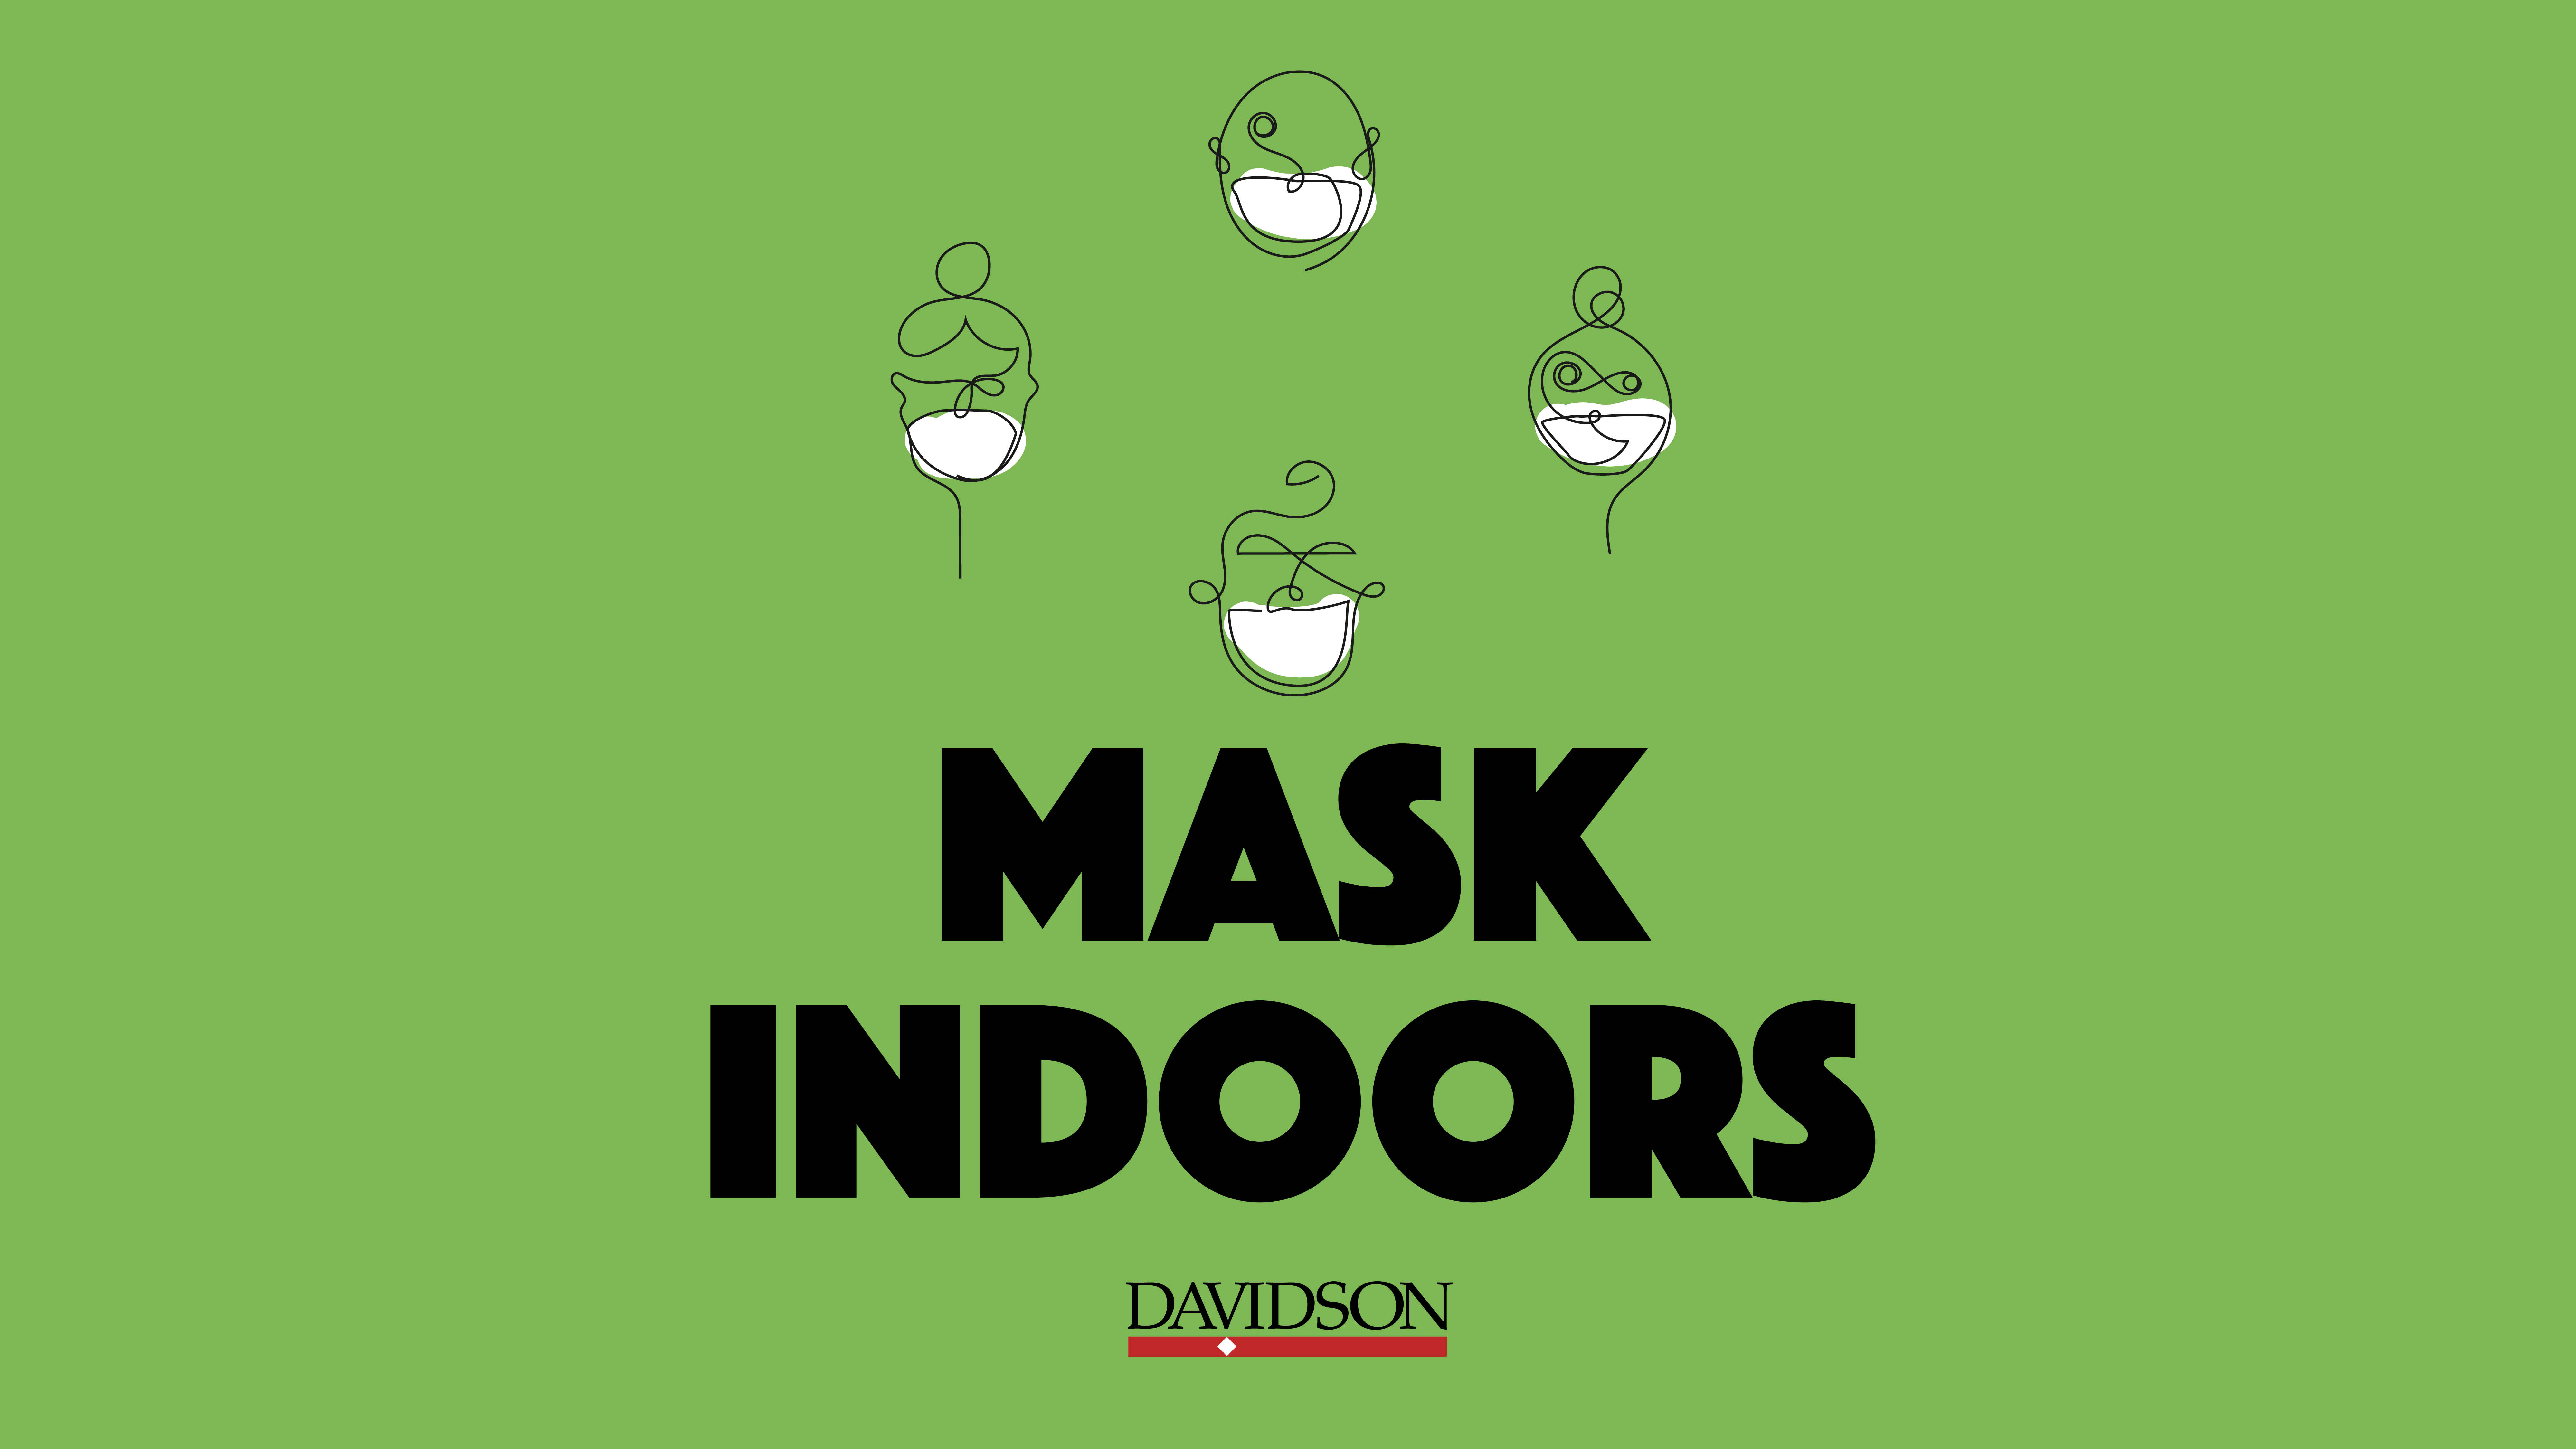 Outline of group wearing masks with Mask Indoors text